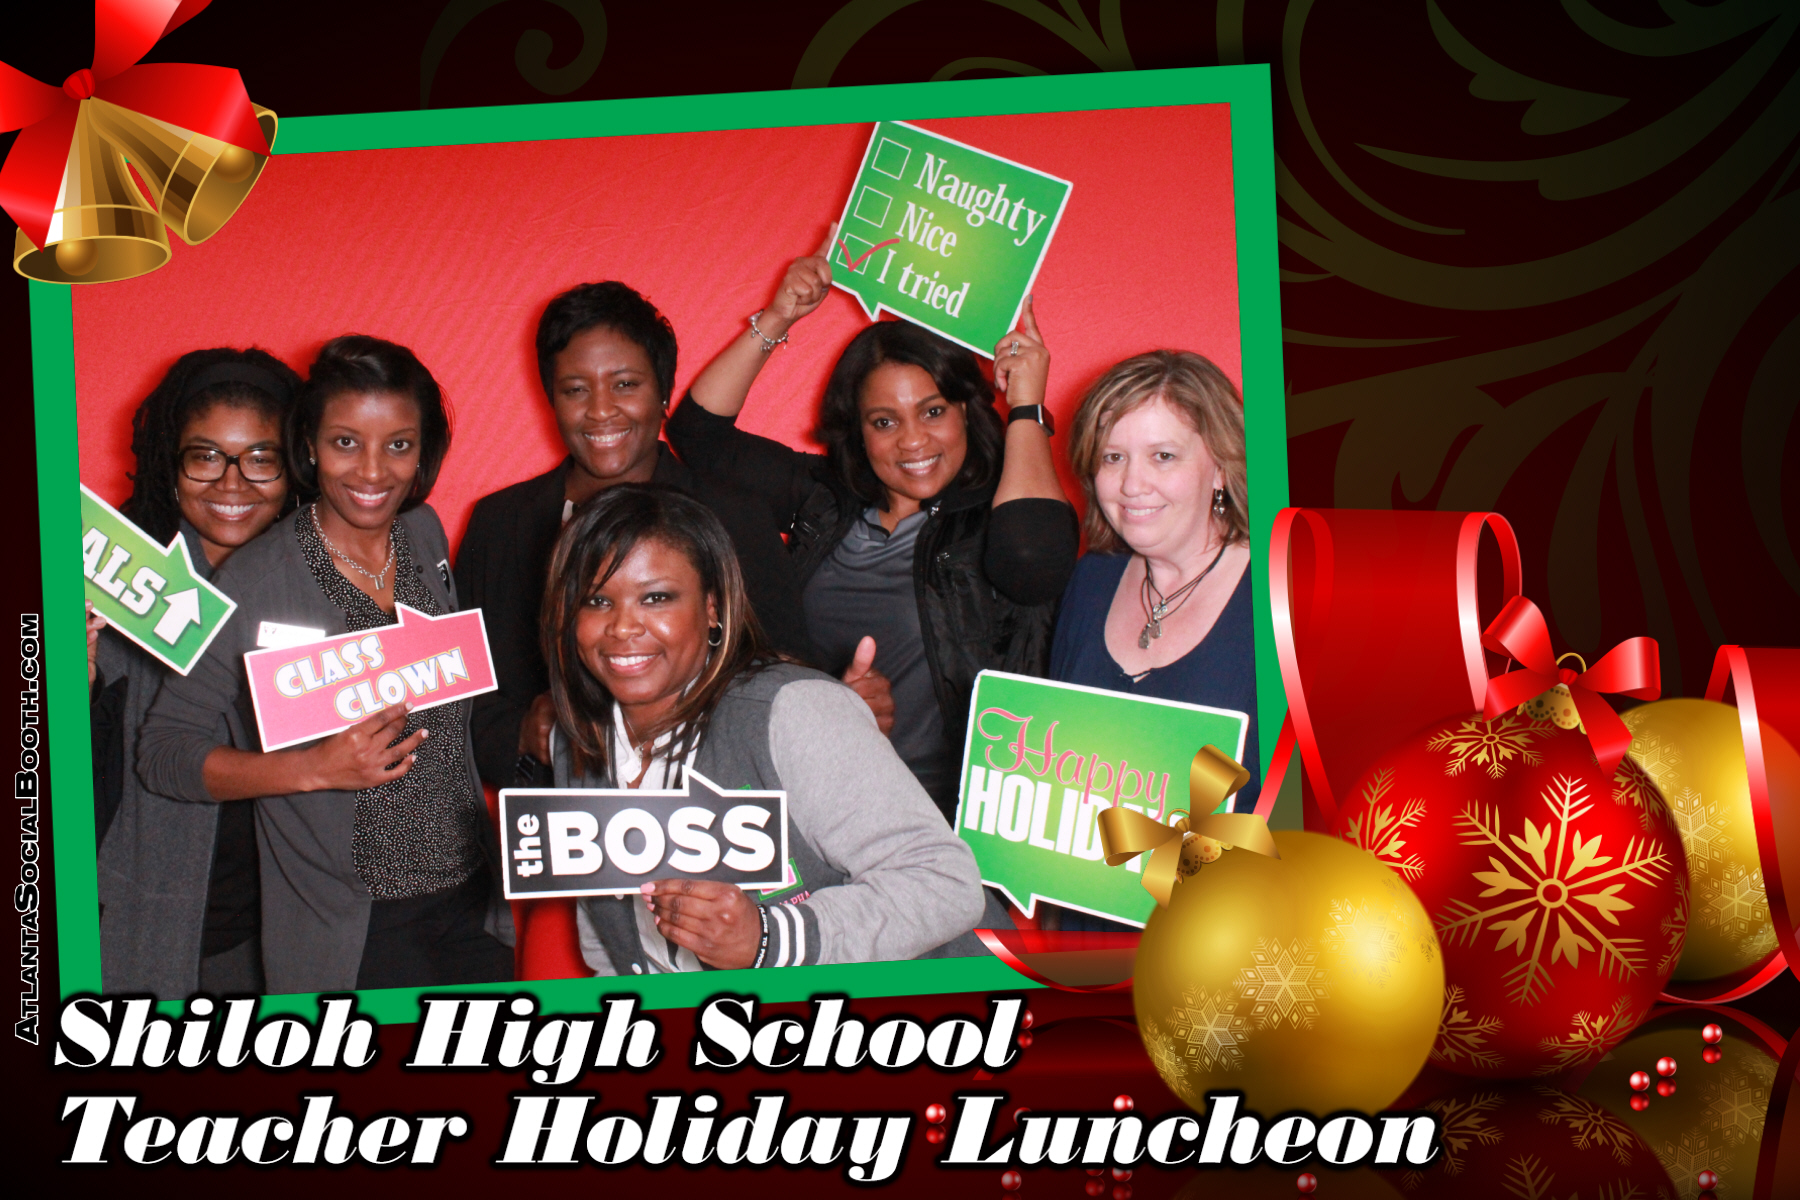 Shiloh HS Teacher Holiday Luncheon